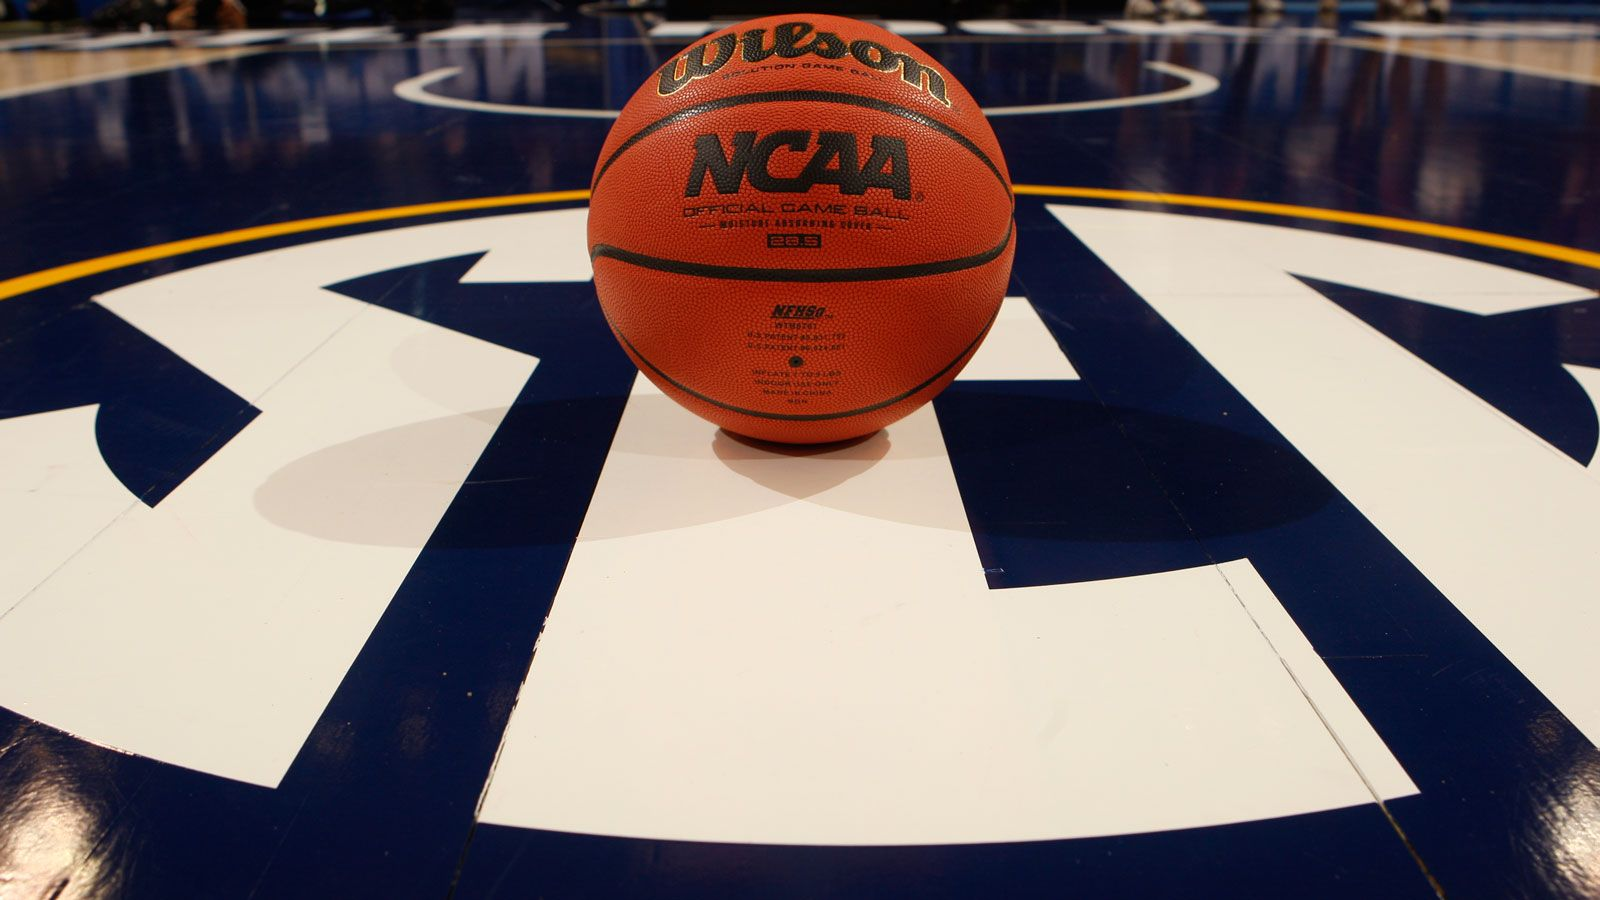 SEC defeats Big 12 in 2016 Women's Basketball Challenge